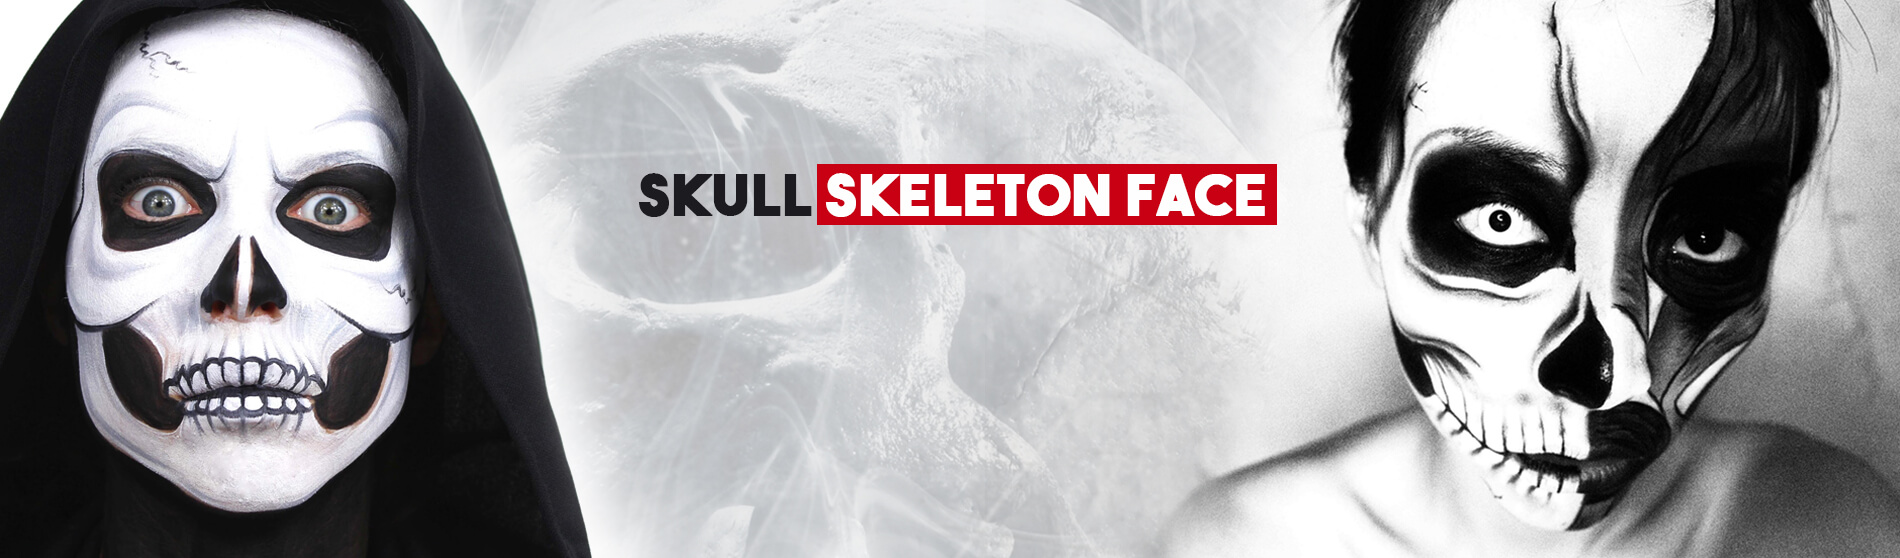 Skull-Skeleton-Face